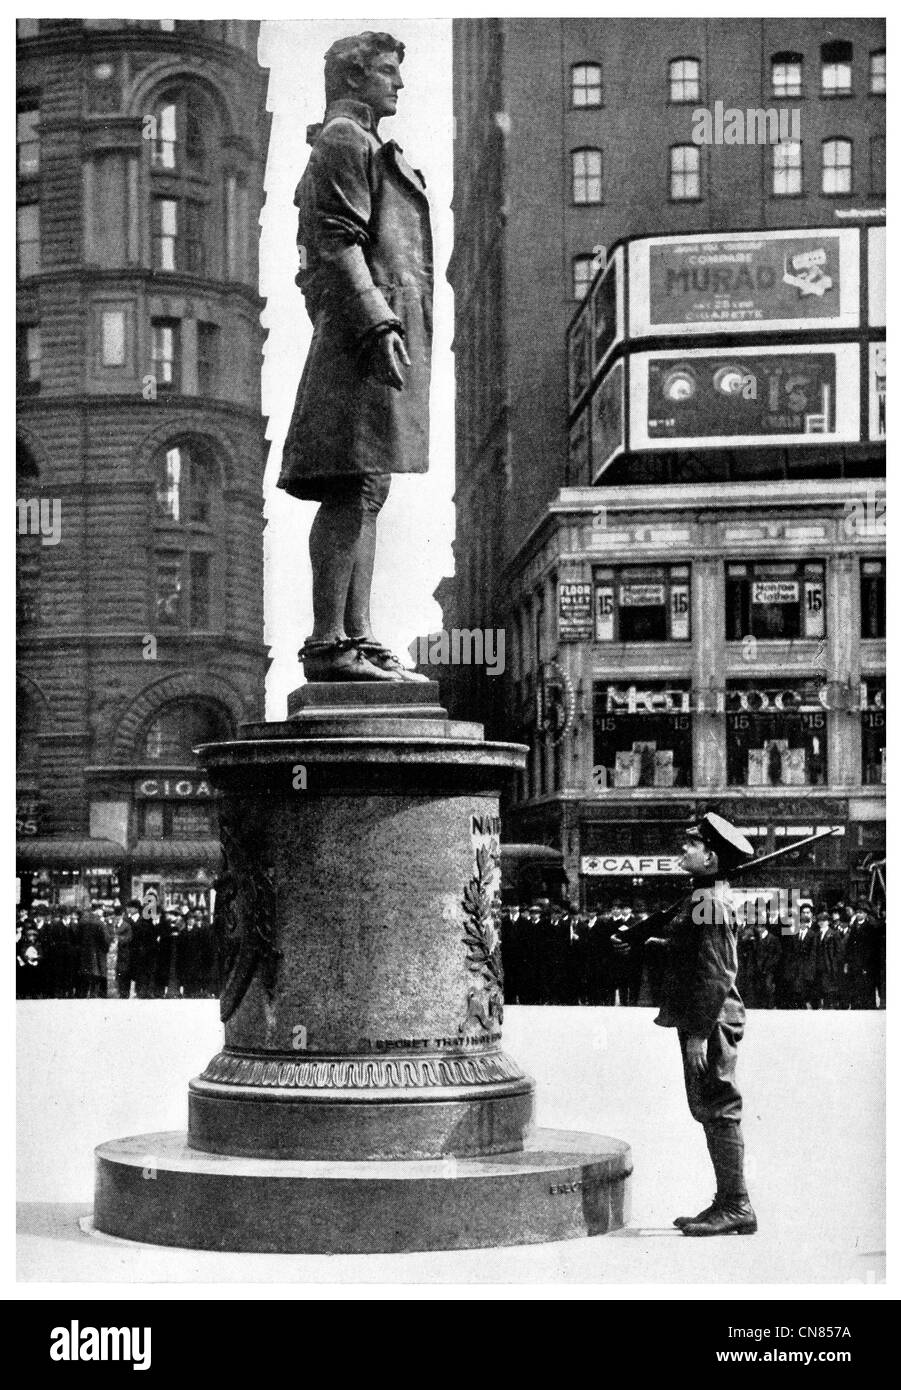 First published 1917 Statue Nathan Hale City Hall Square New York Patriot Hero - Stock Image